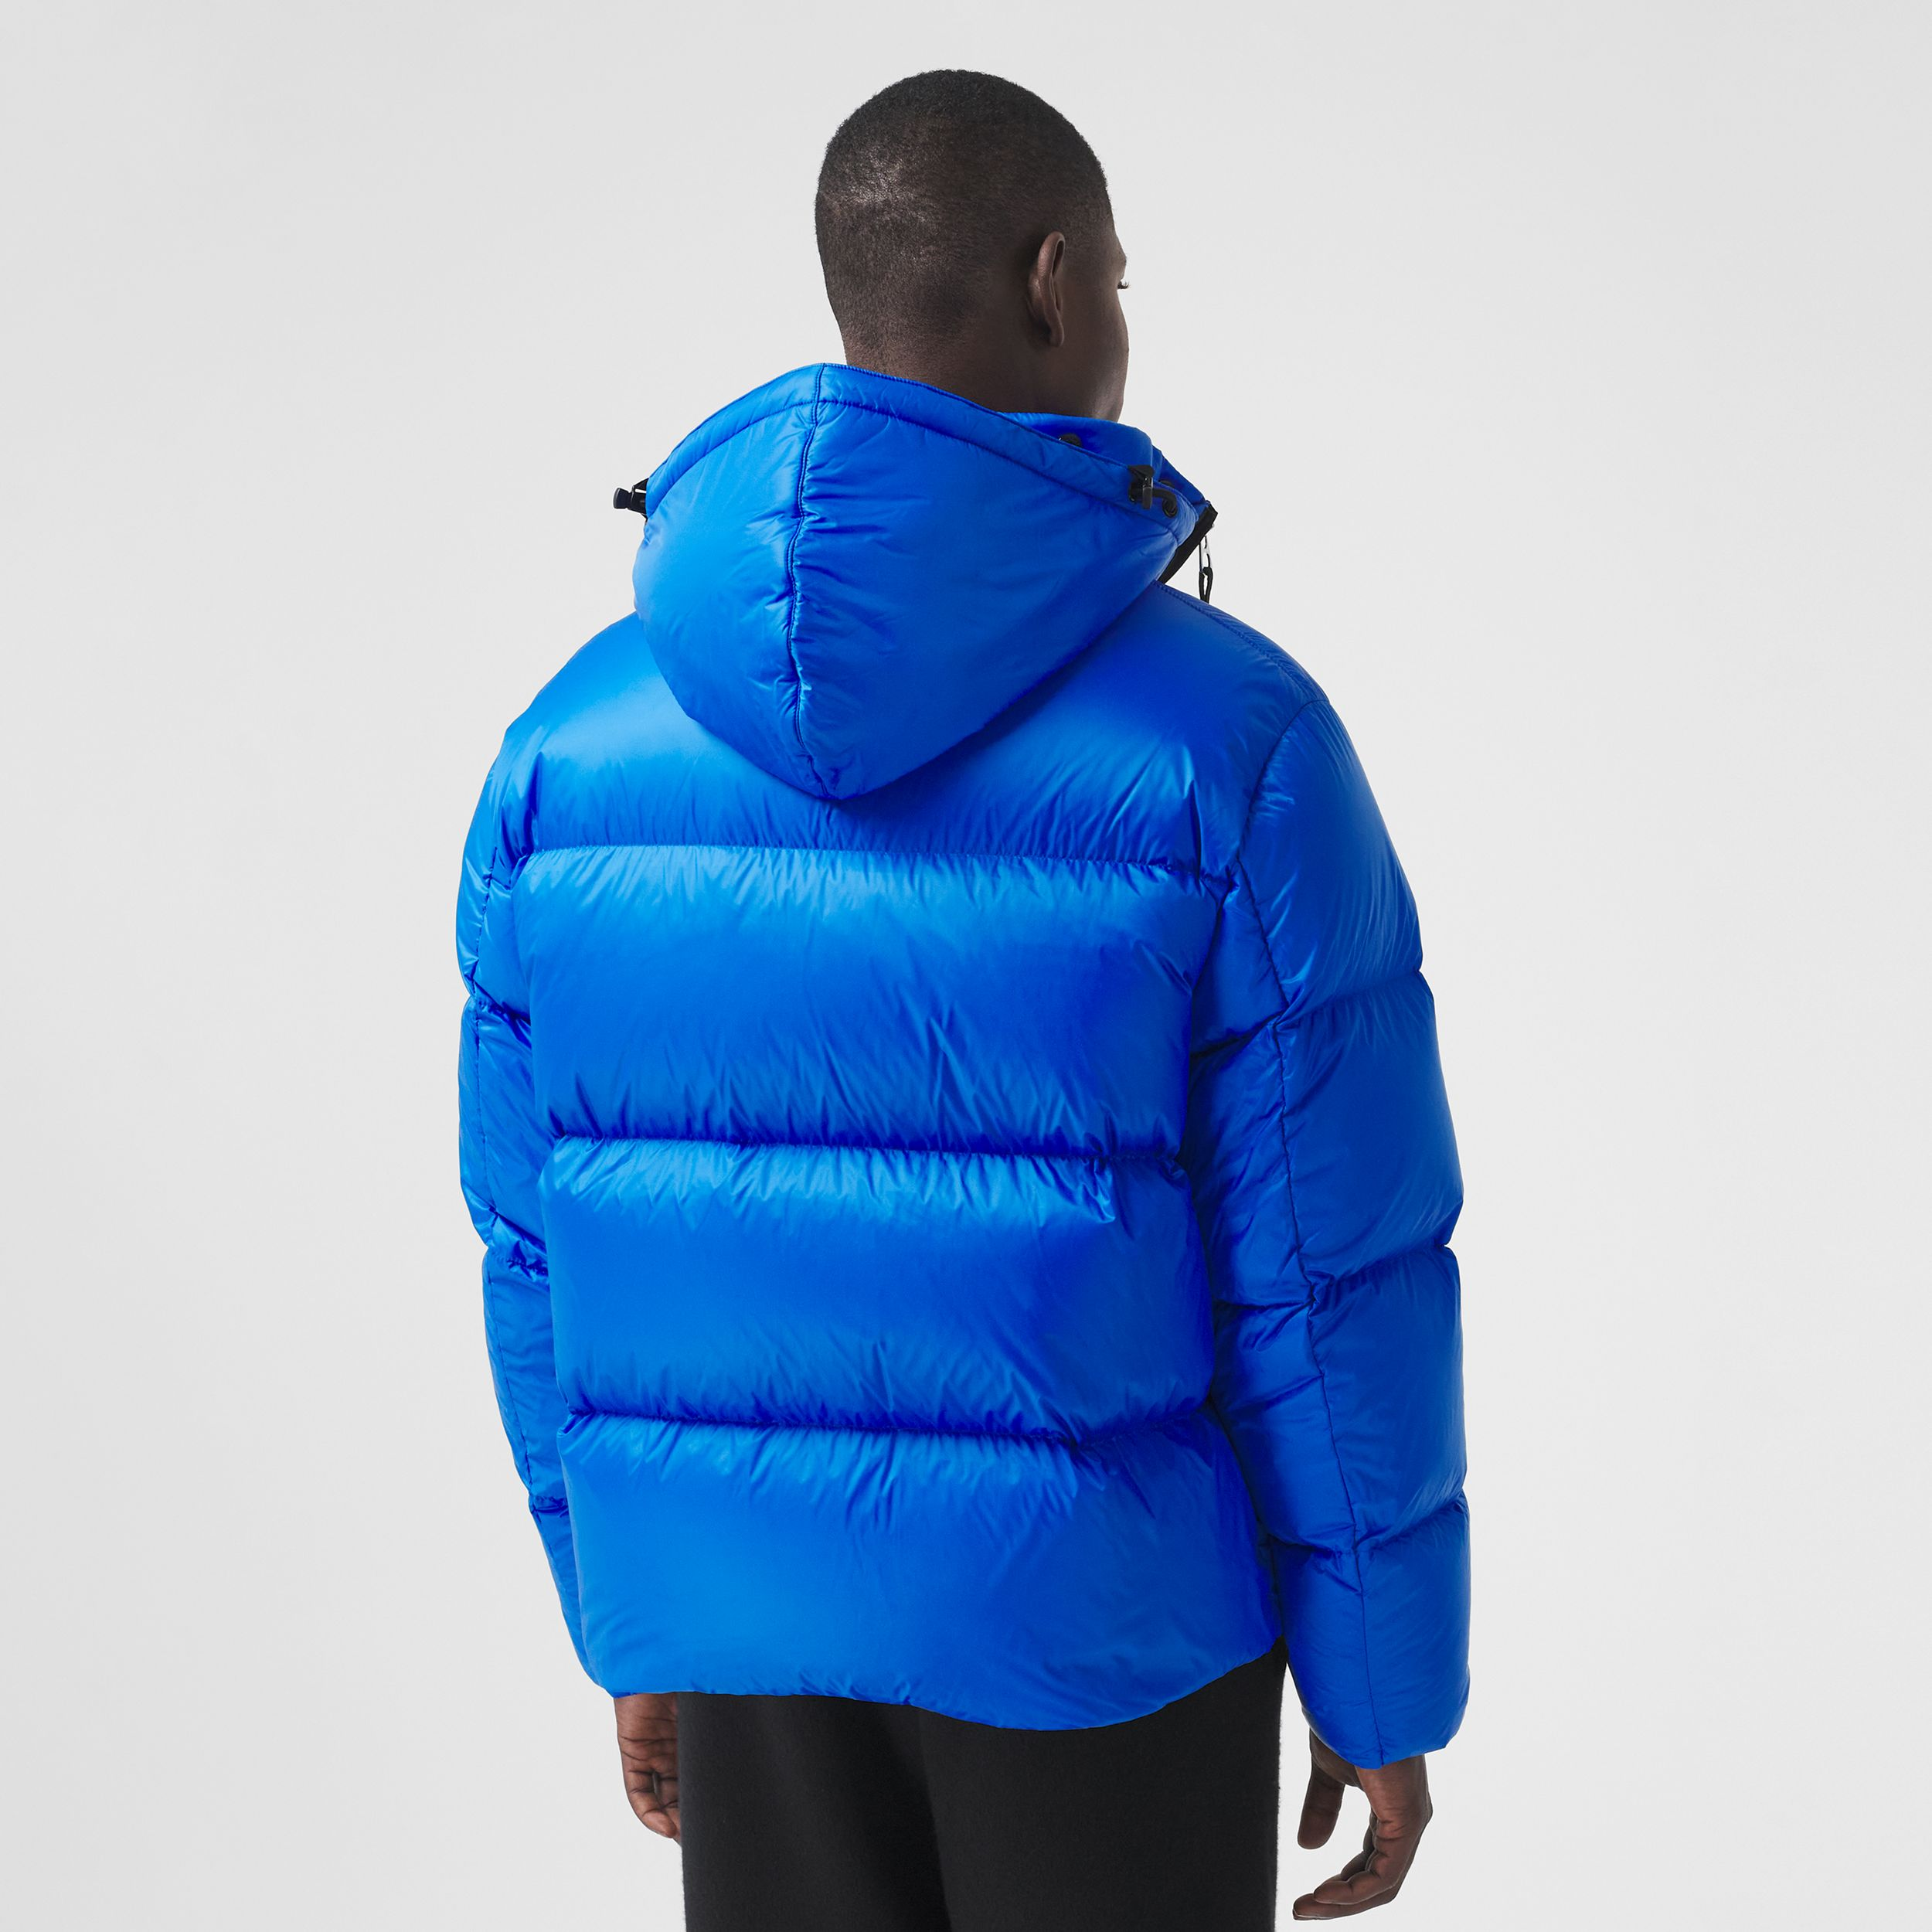 Packaway Hood Zip Detail Puffer Jacket in Canvas Blue - Men | Burberry - 3